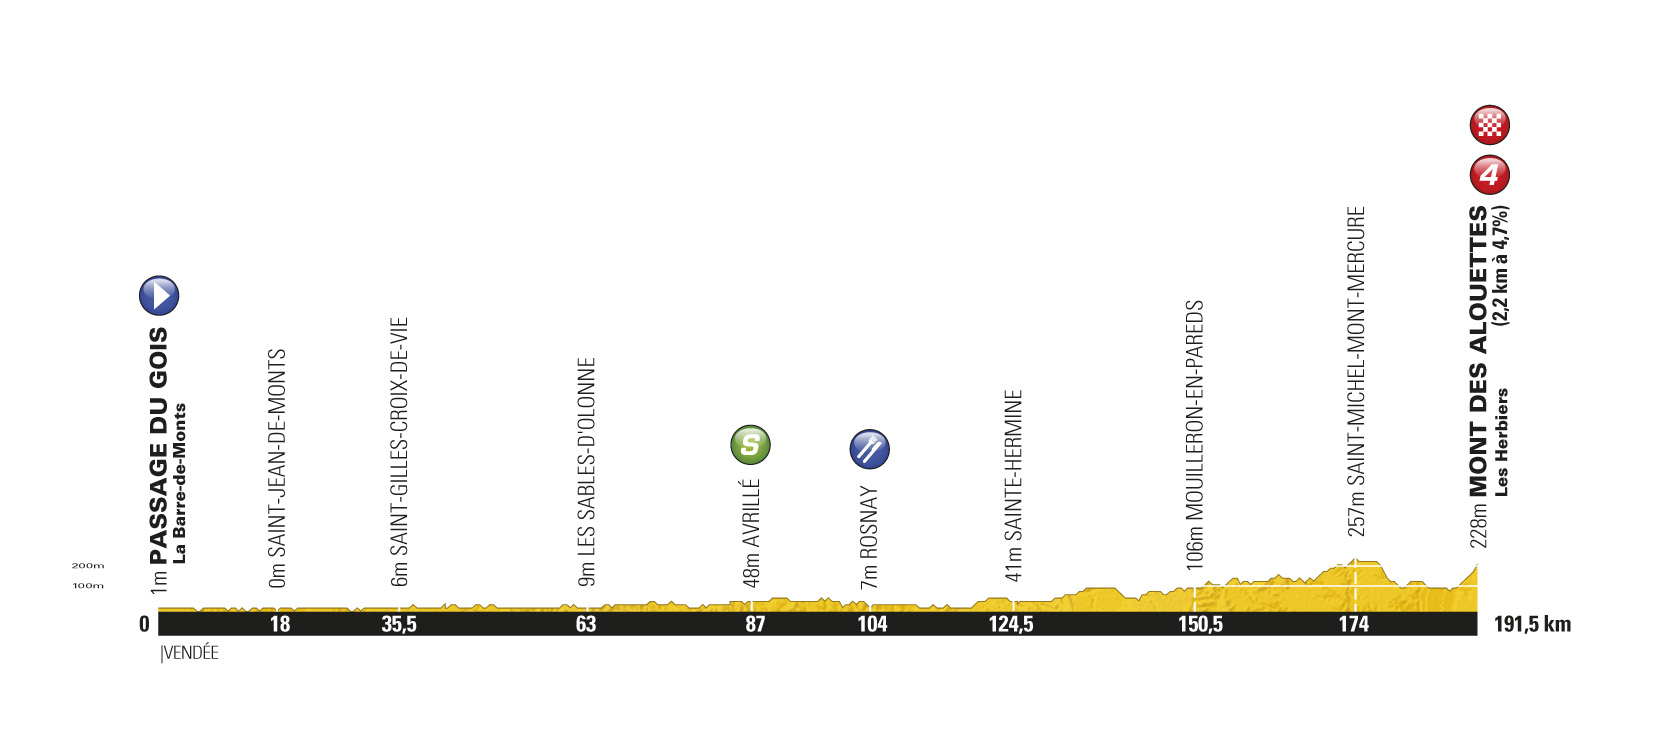 Stage 1 profile, Tour de France 2011